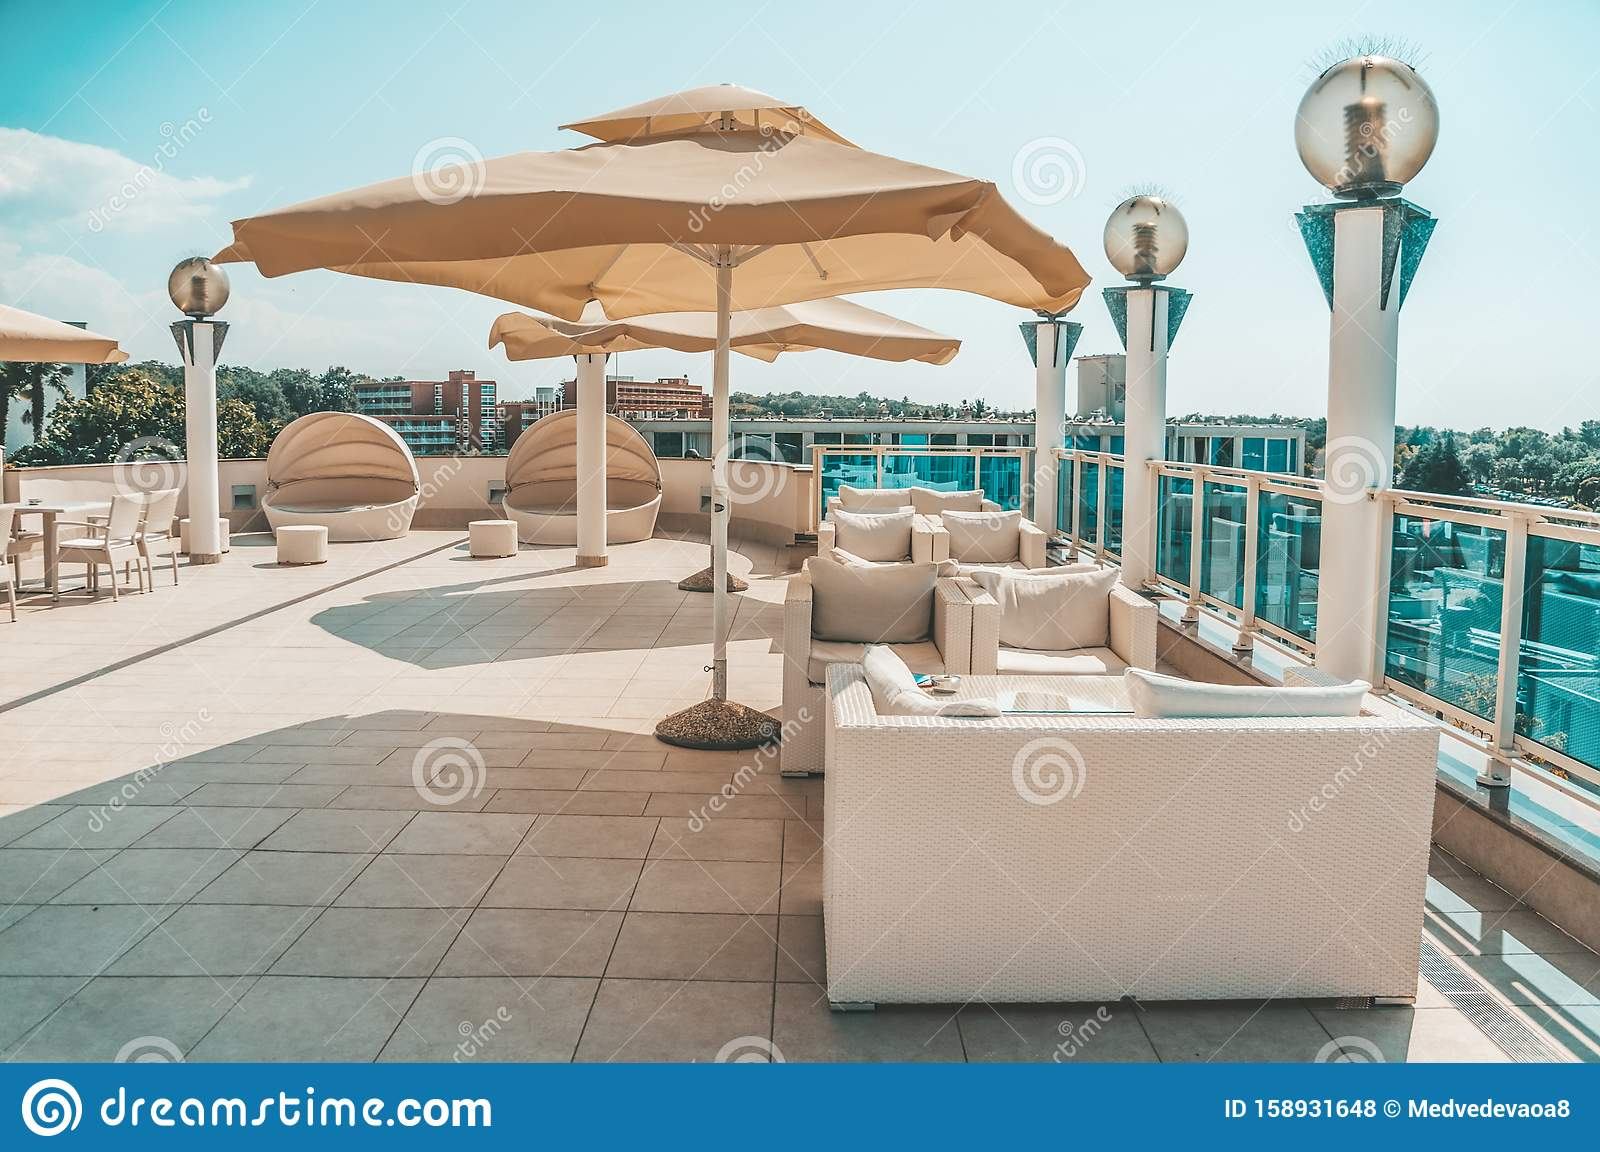 Large White Umbrella And Outdoor Furniture Sofas And Rattan Chairs With Cushions And A Glass Topped Table Place To Relax On The Stock Photo Image Of Furniture Cushions 158931648